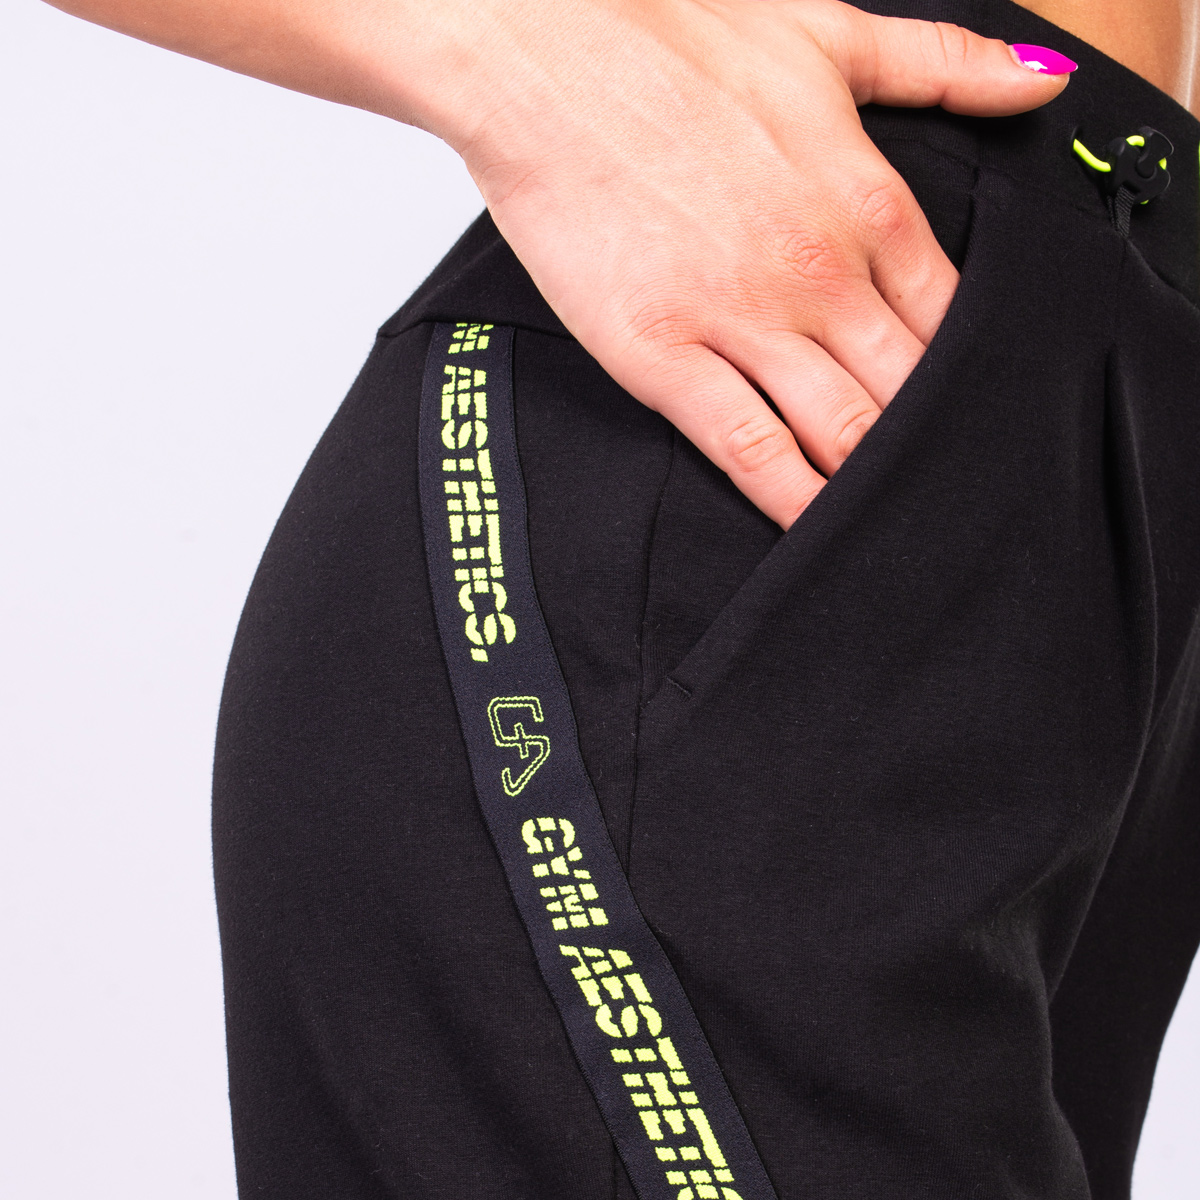 Athleisure Trendy 9 inch Shorts for Women in Black | Gym Aesthetics